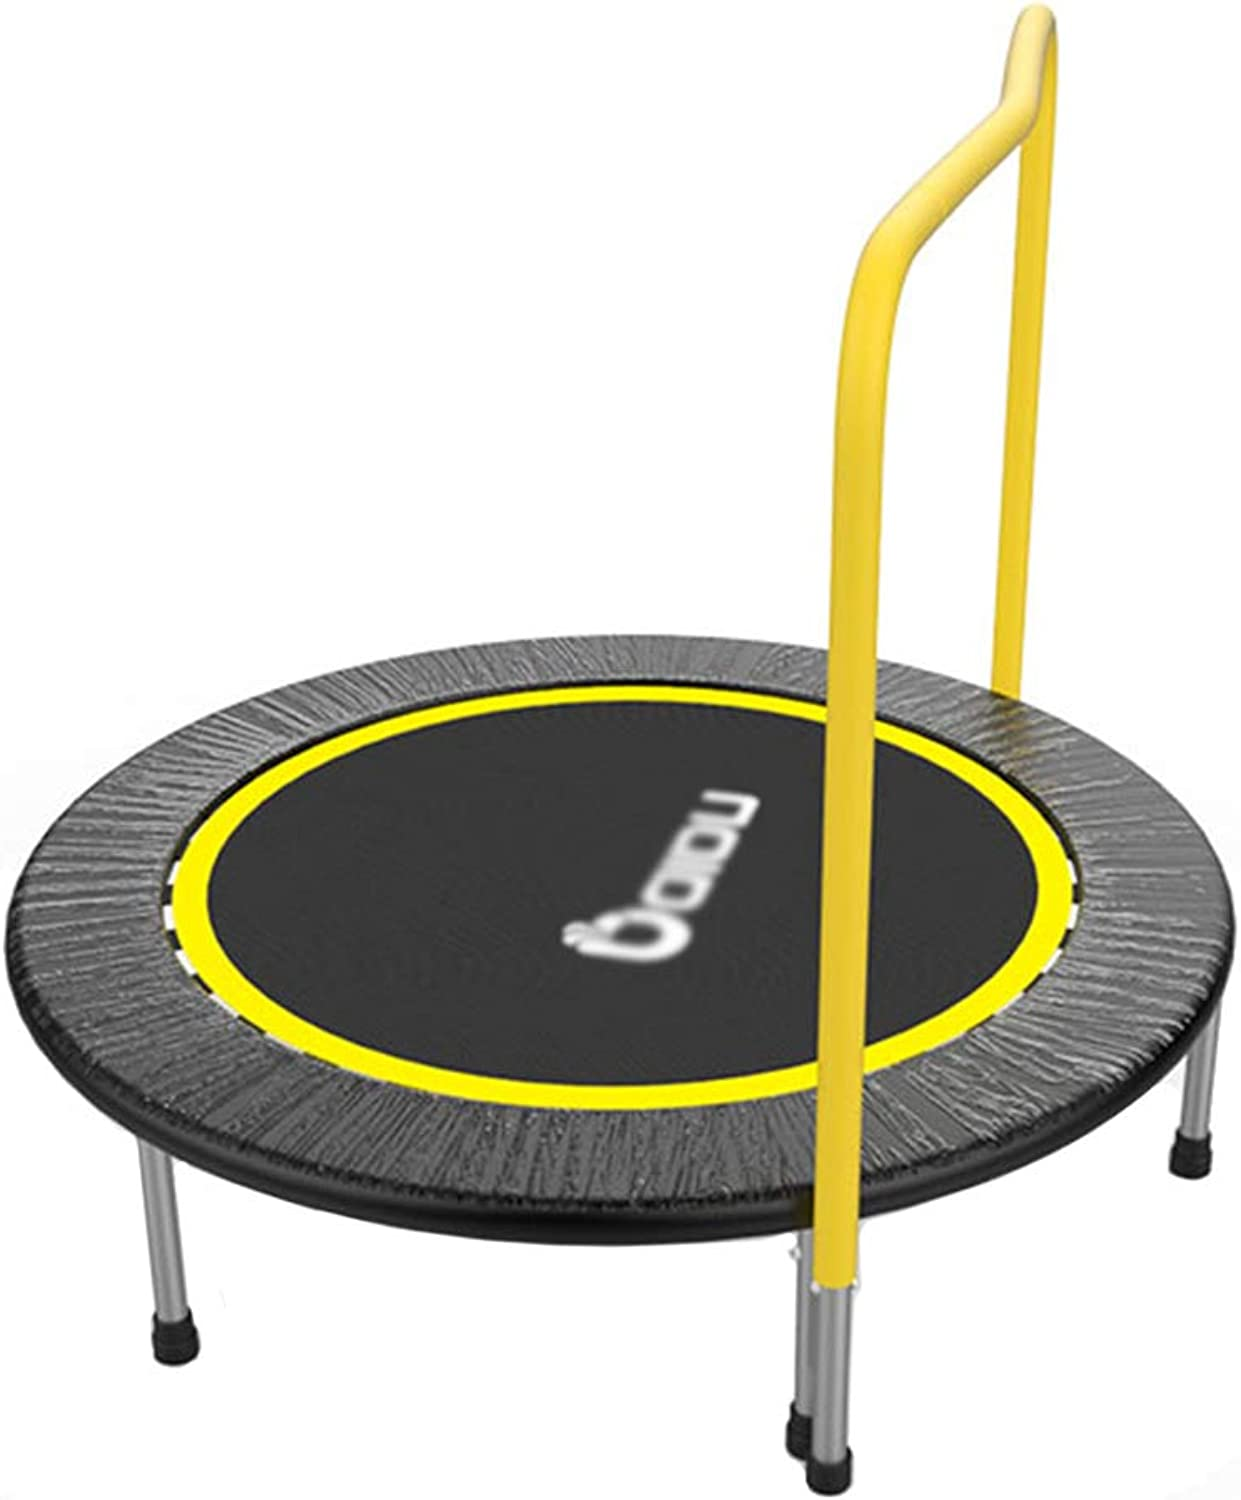 LXLA  Kids Mini Trampoline Portable Bouncer with Handrail and Predective Frame Cover  Max Load 250KG